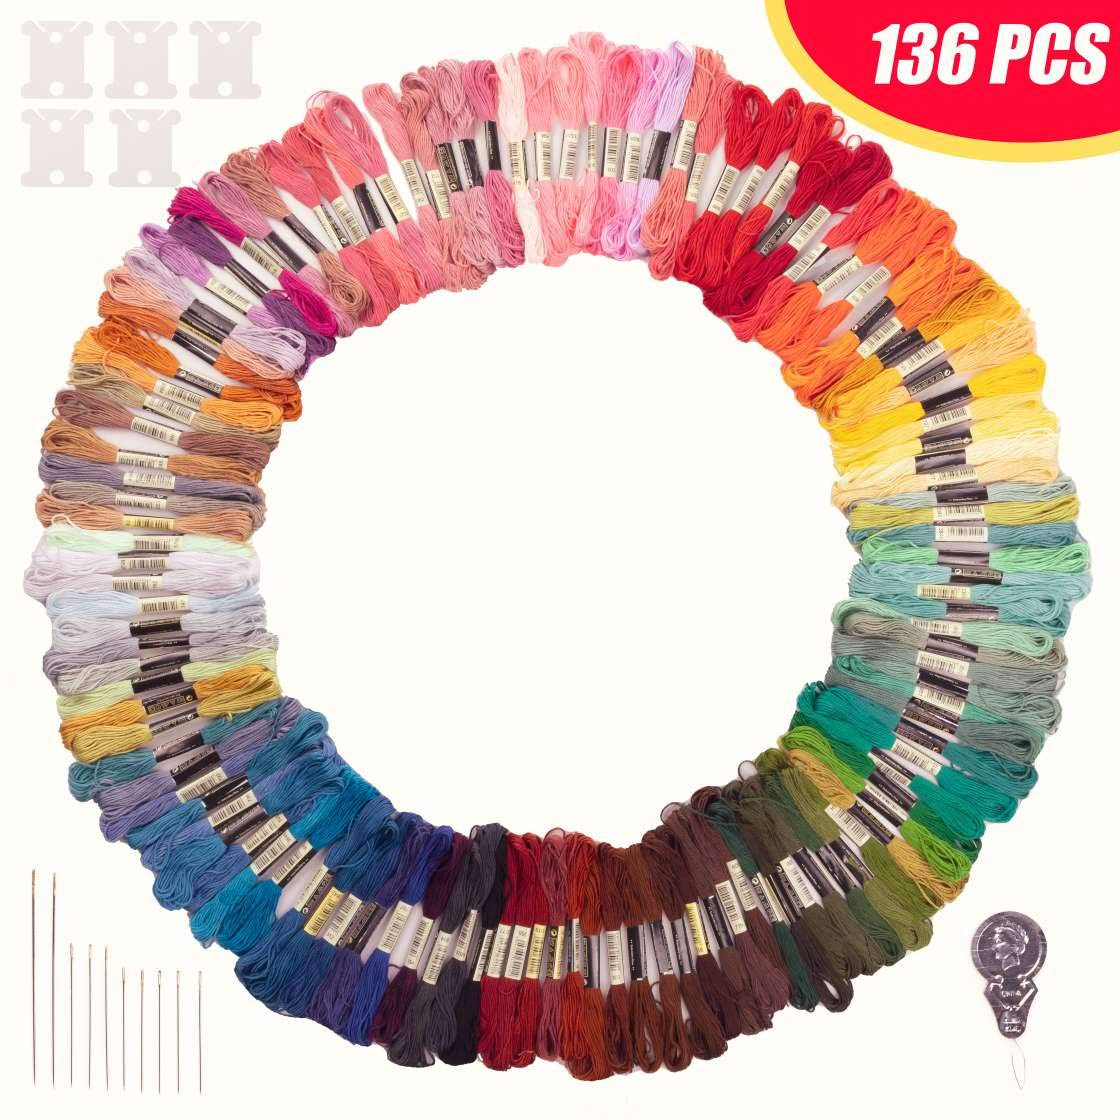 STOCKYFY Embroidery Thread Rainbow Color Embroidery Floss 120 Skeins /& Accessories Per Pack Friendship Bracelets Cross Stitch Threads /& Craft Floss